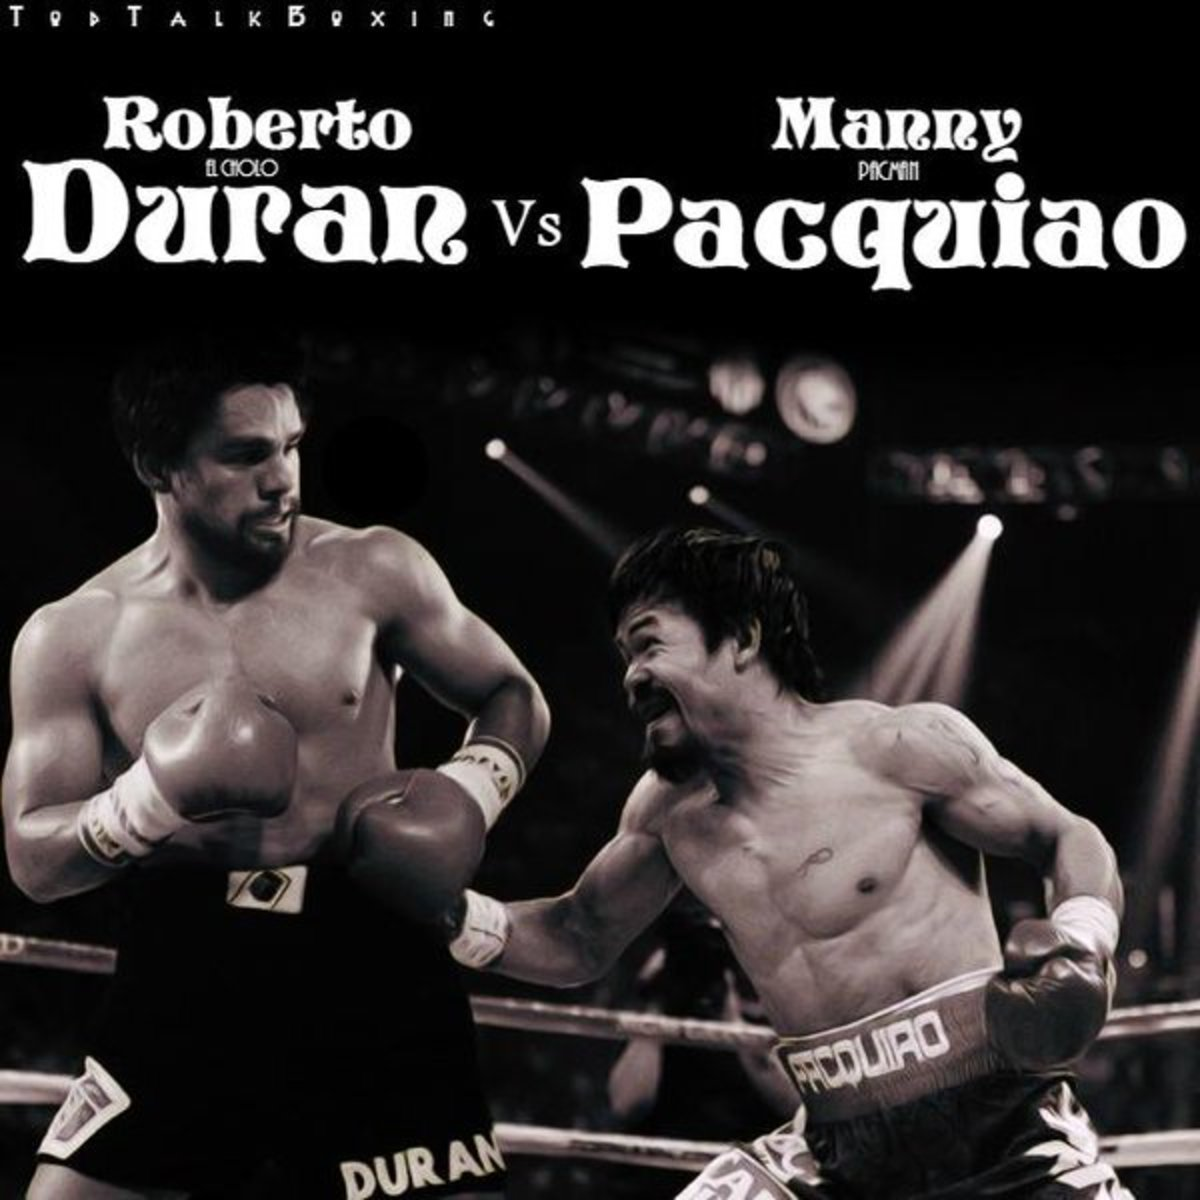 Could Duran beat Pacquiao?